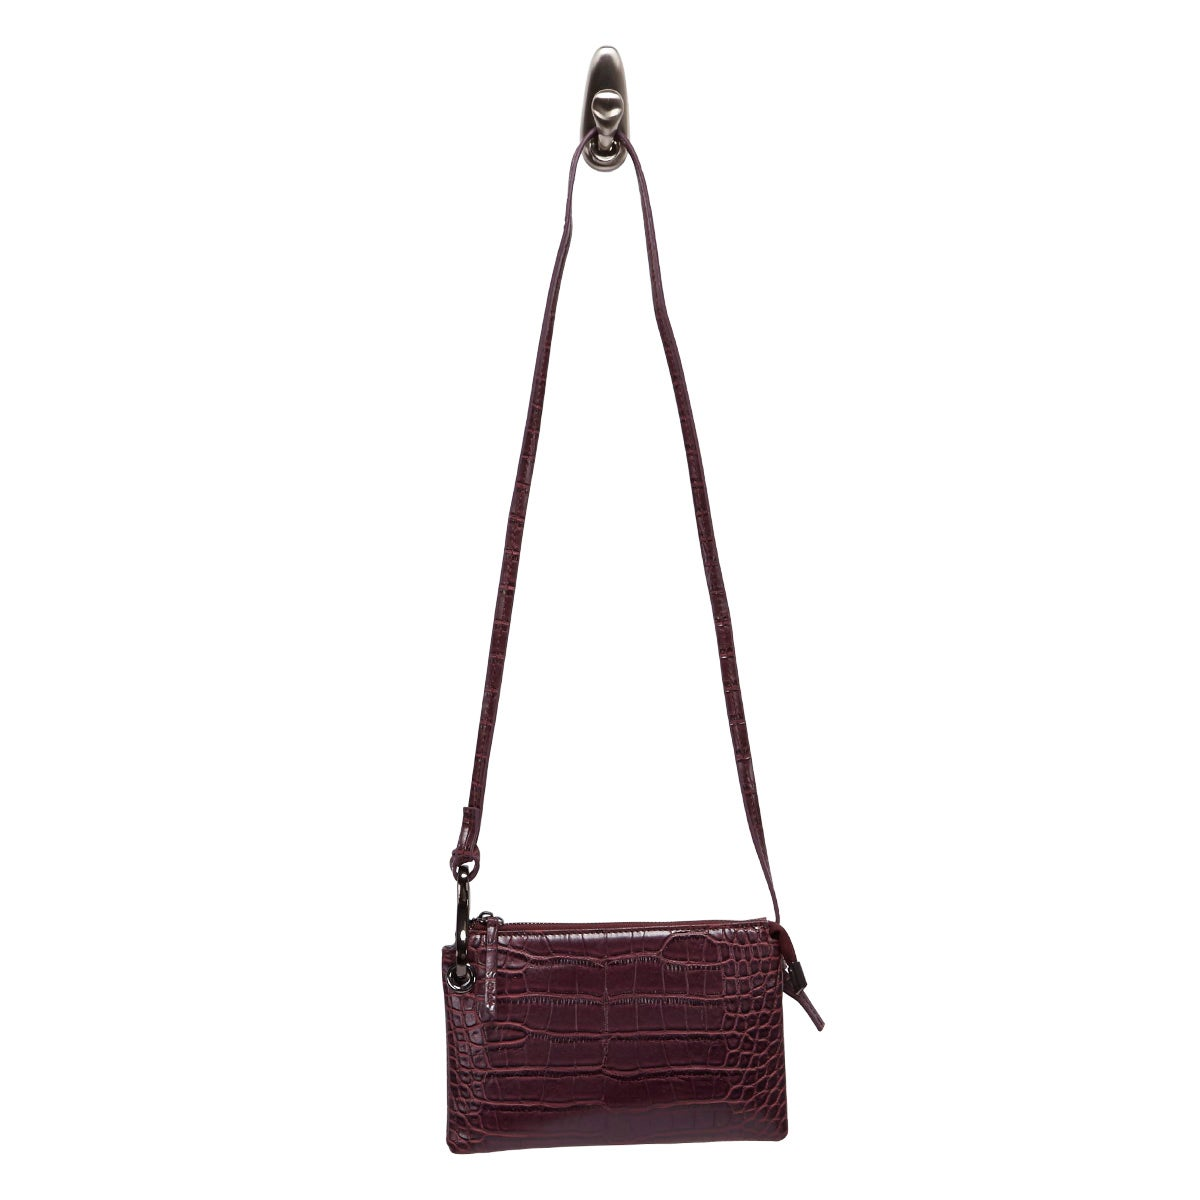 Lds wine croco mini cross body bag